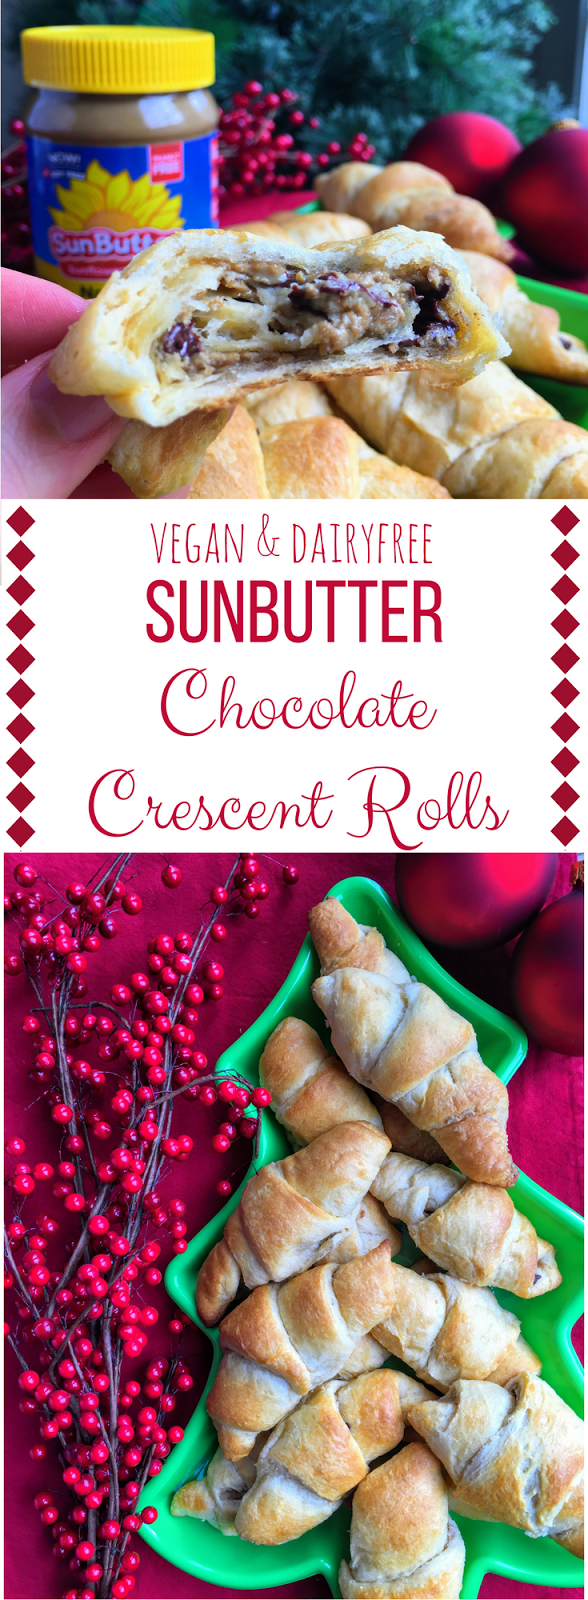 Christmas Breakfast Idea: Crescent Rolls